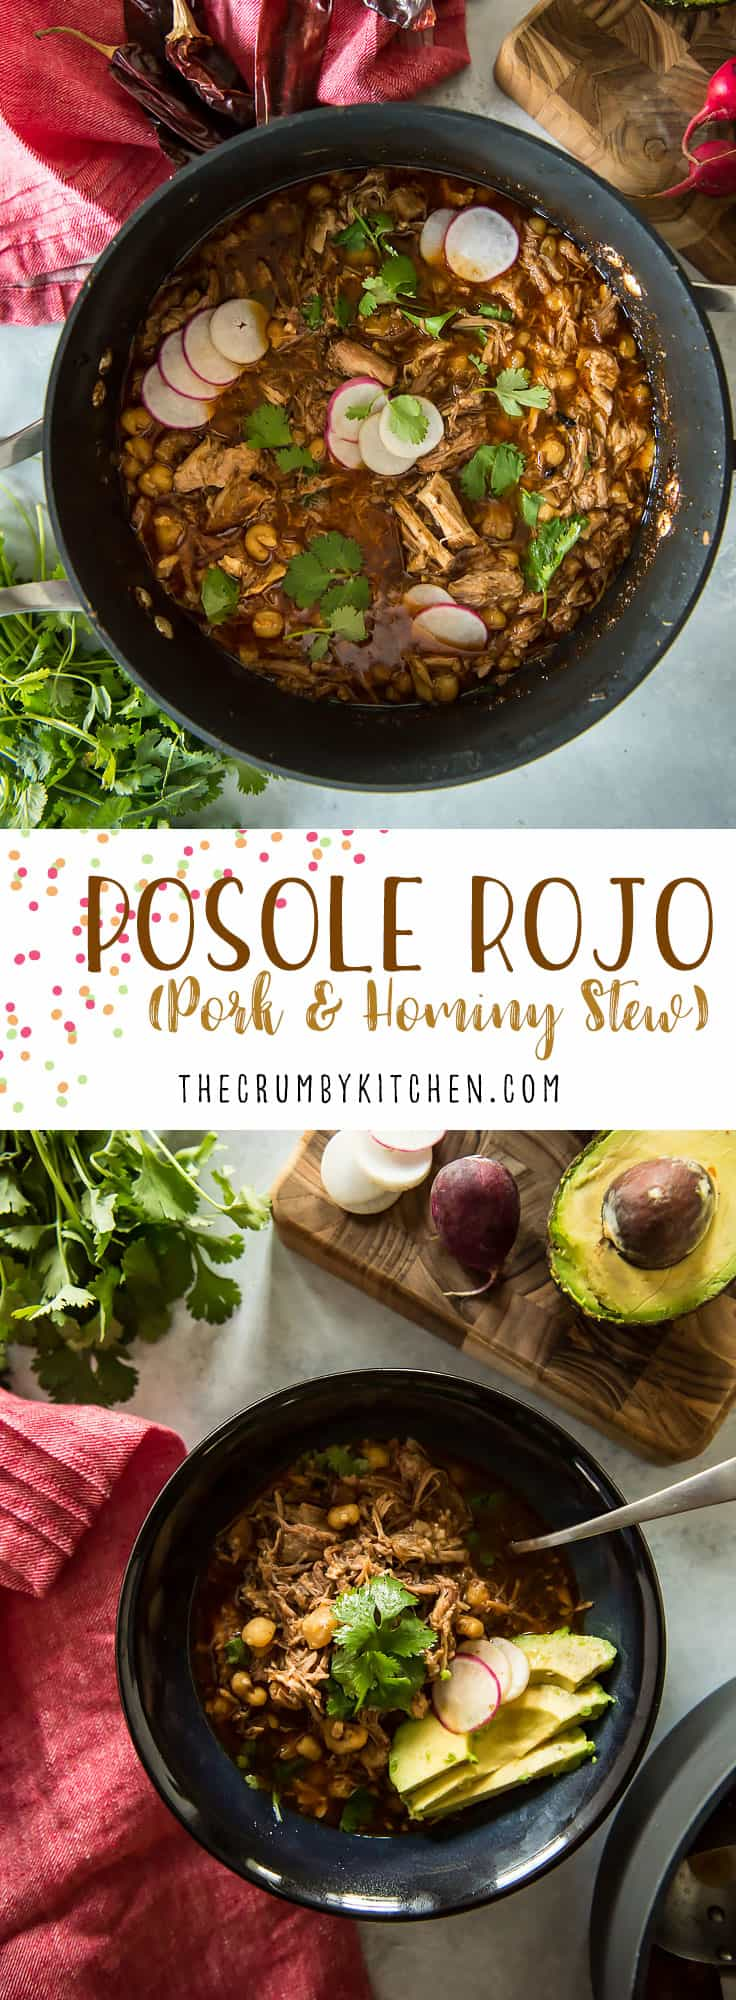 Posole Rojo The Best Pork And Hominy Stew The Crumby Kitchen